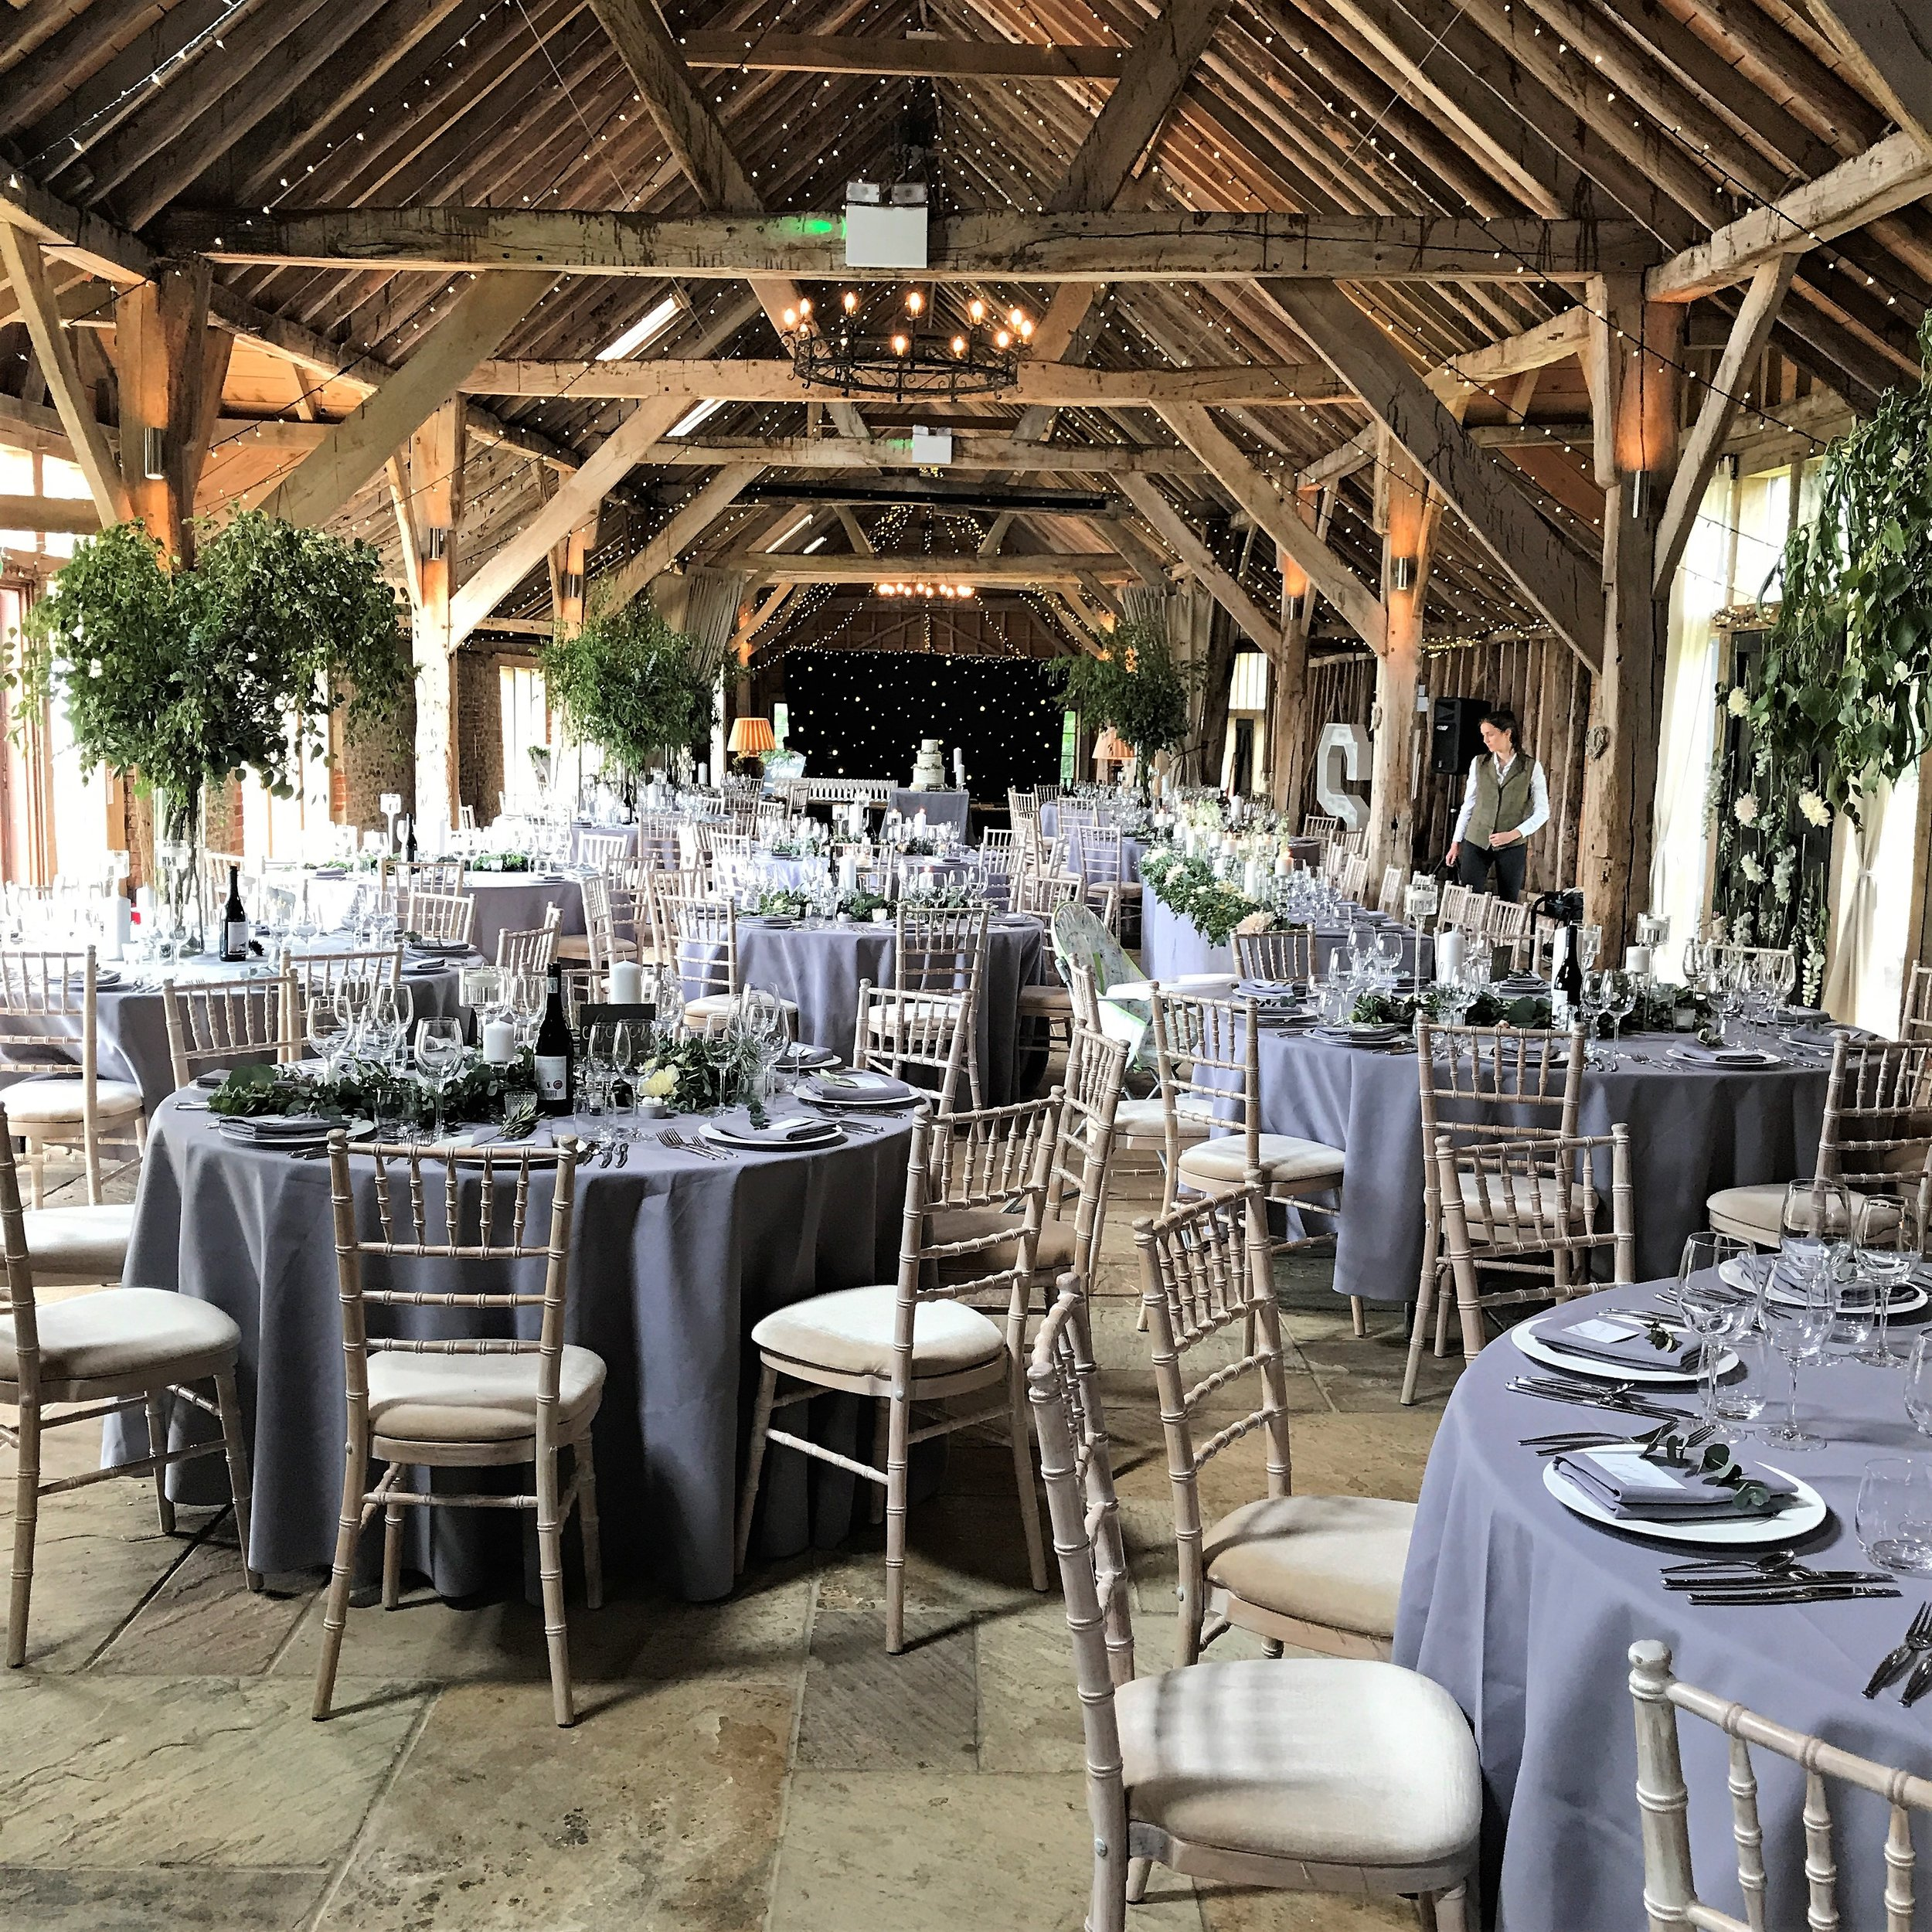 A beautiful all foliage wedding at Long Barn, Hampshire. We made garlands and squiggled them across half of the tables as tall vases filled with silver birch and contorted willow drew the eyes upwards. Add in lots and lots of candlelight -pillar, tea lights and floating candles and you have a simple but incredibly stylish look.